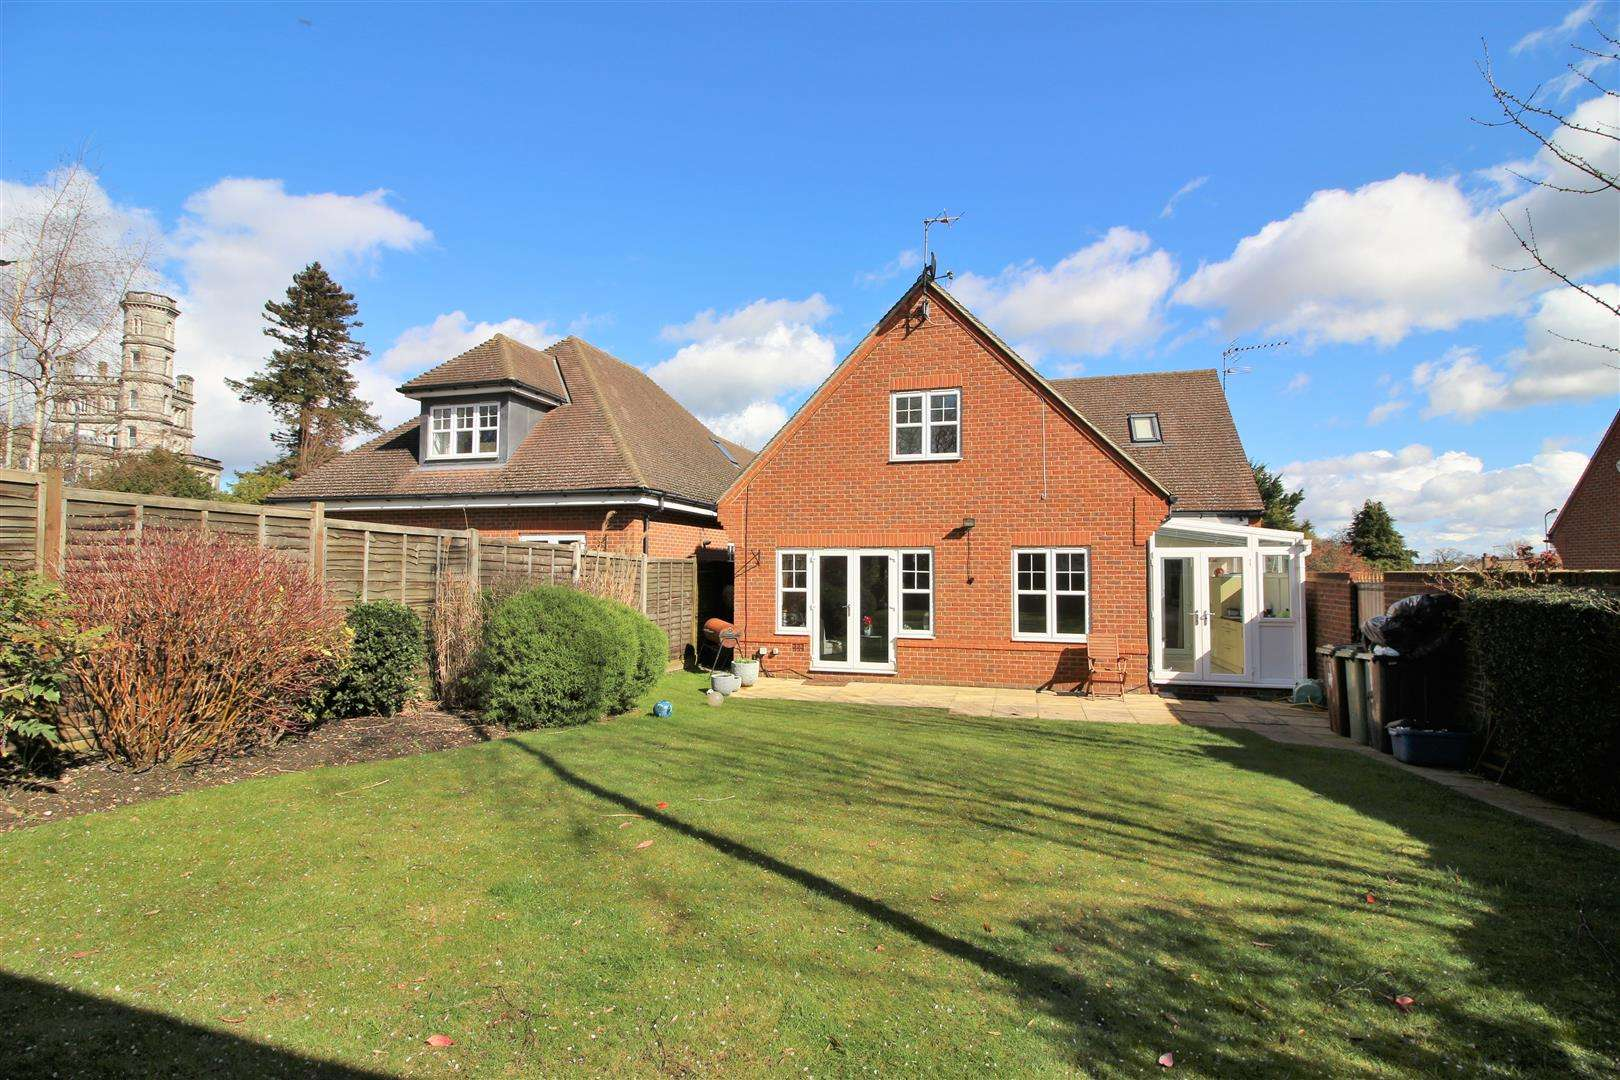 4 bed to rent in Bushey Heath - (Property Image 17)